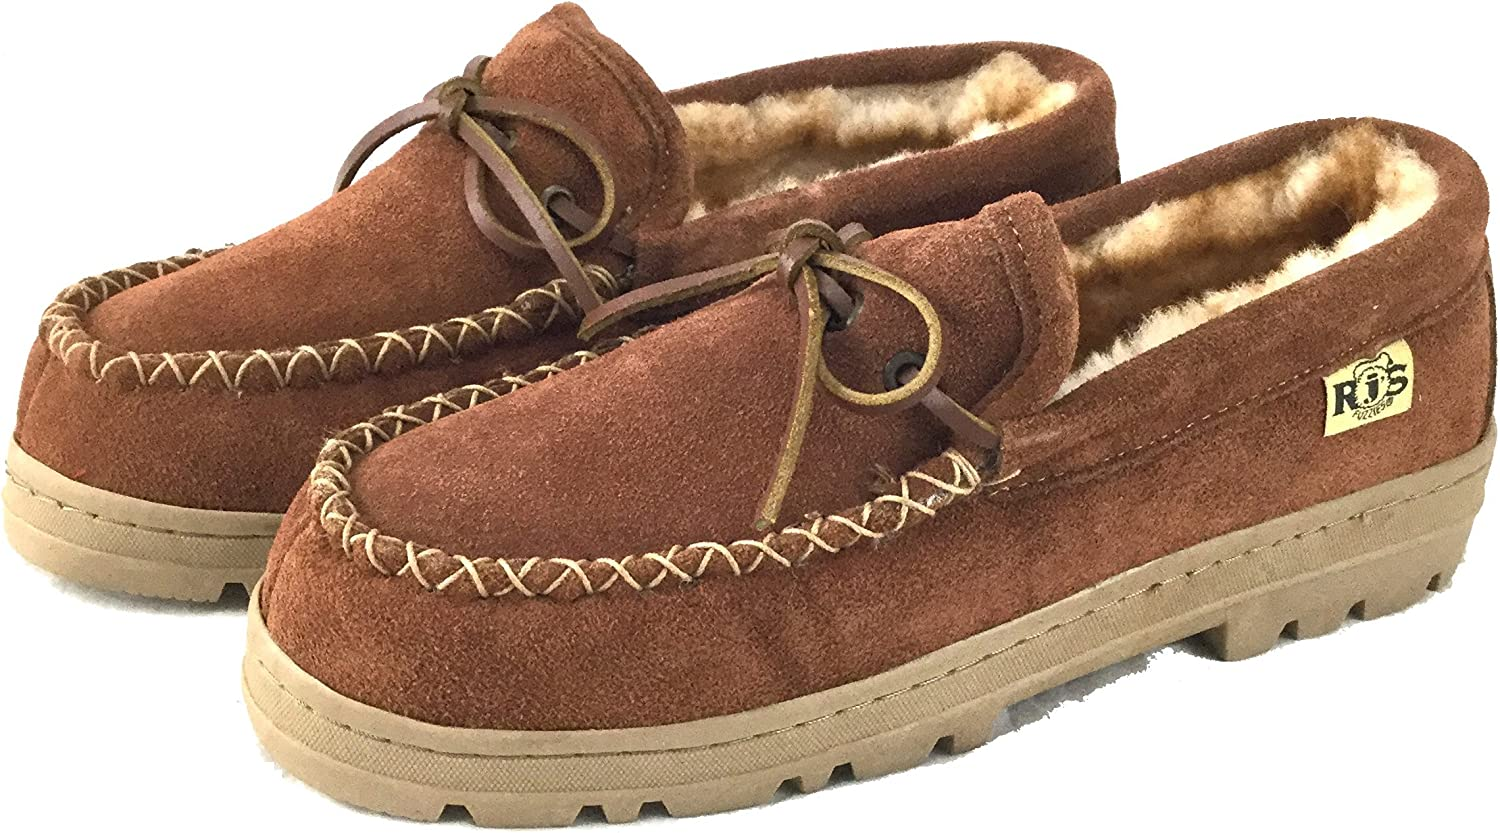 RJ's Fuzzies Mens Sheepskin Leather Lined Soft Sole Moccasins Brown